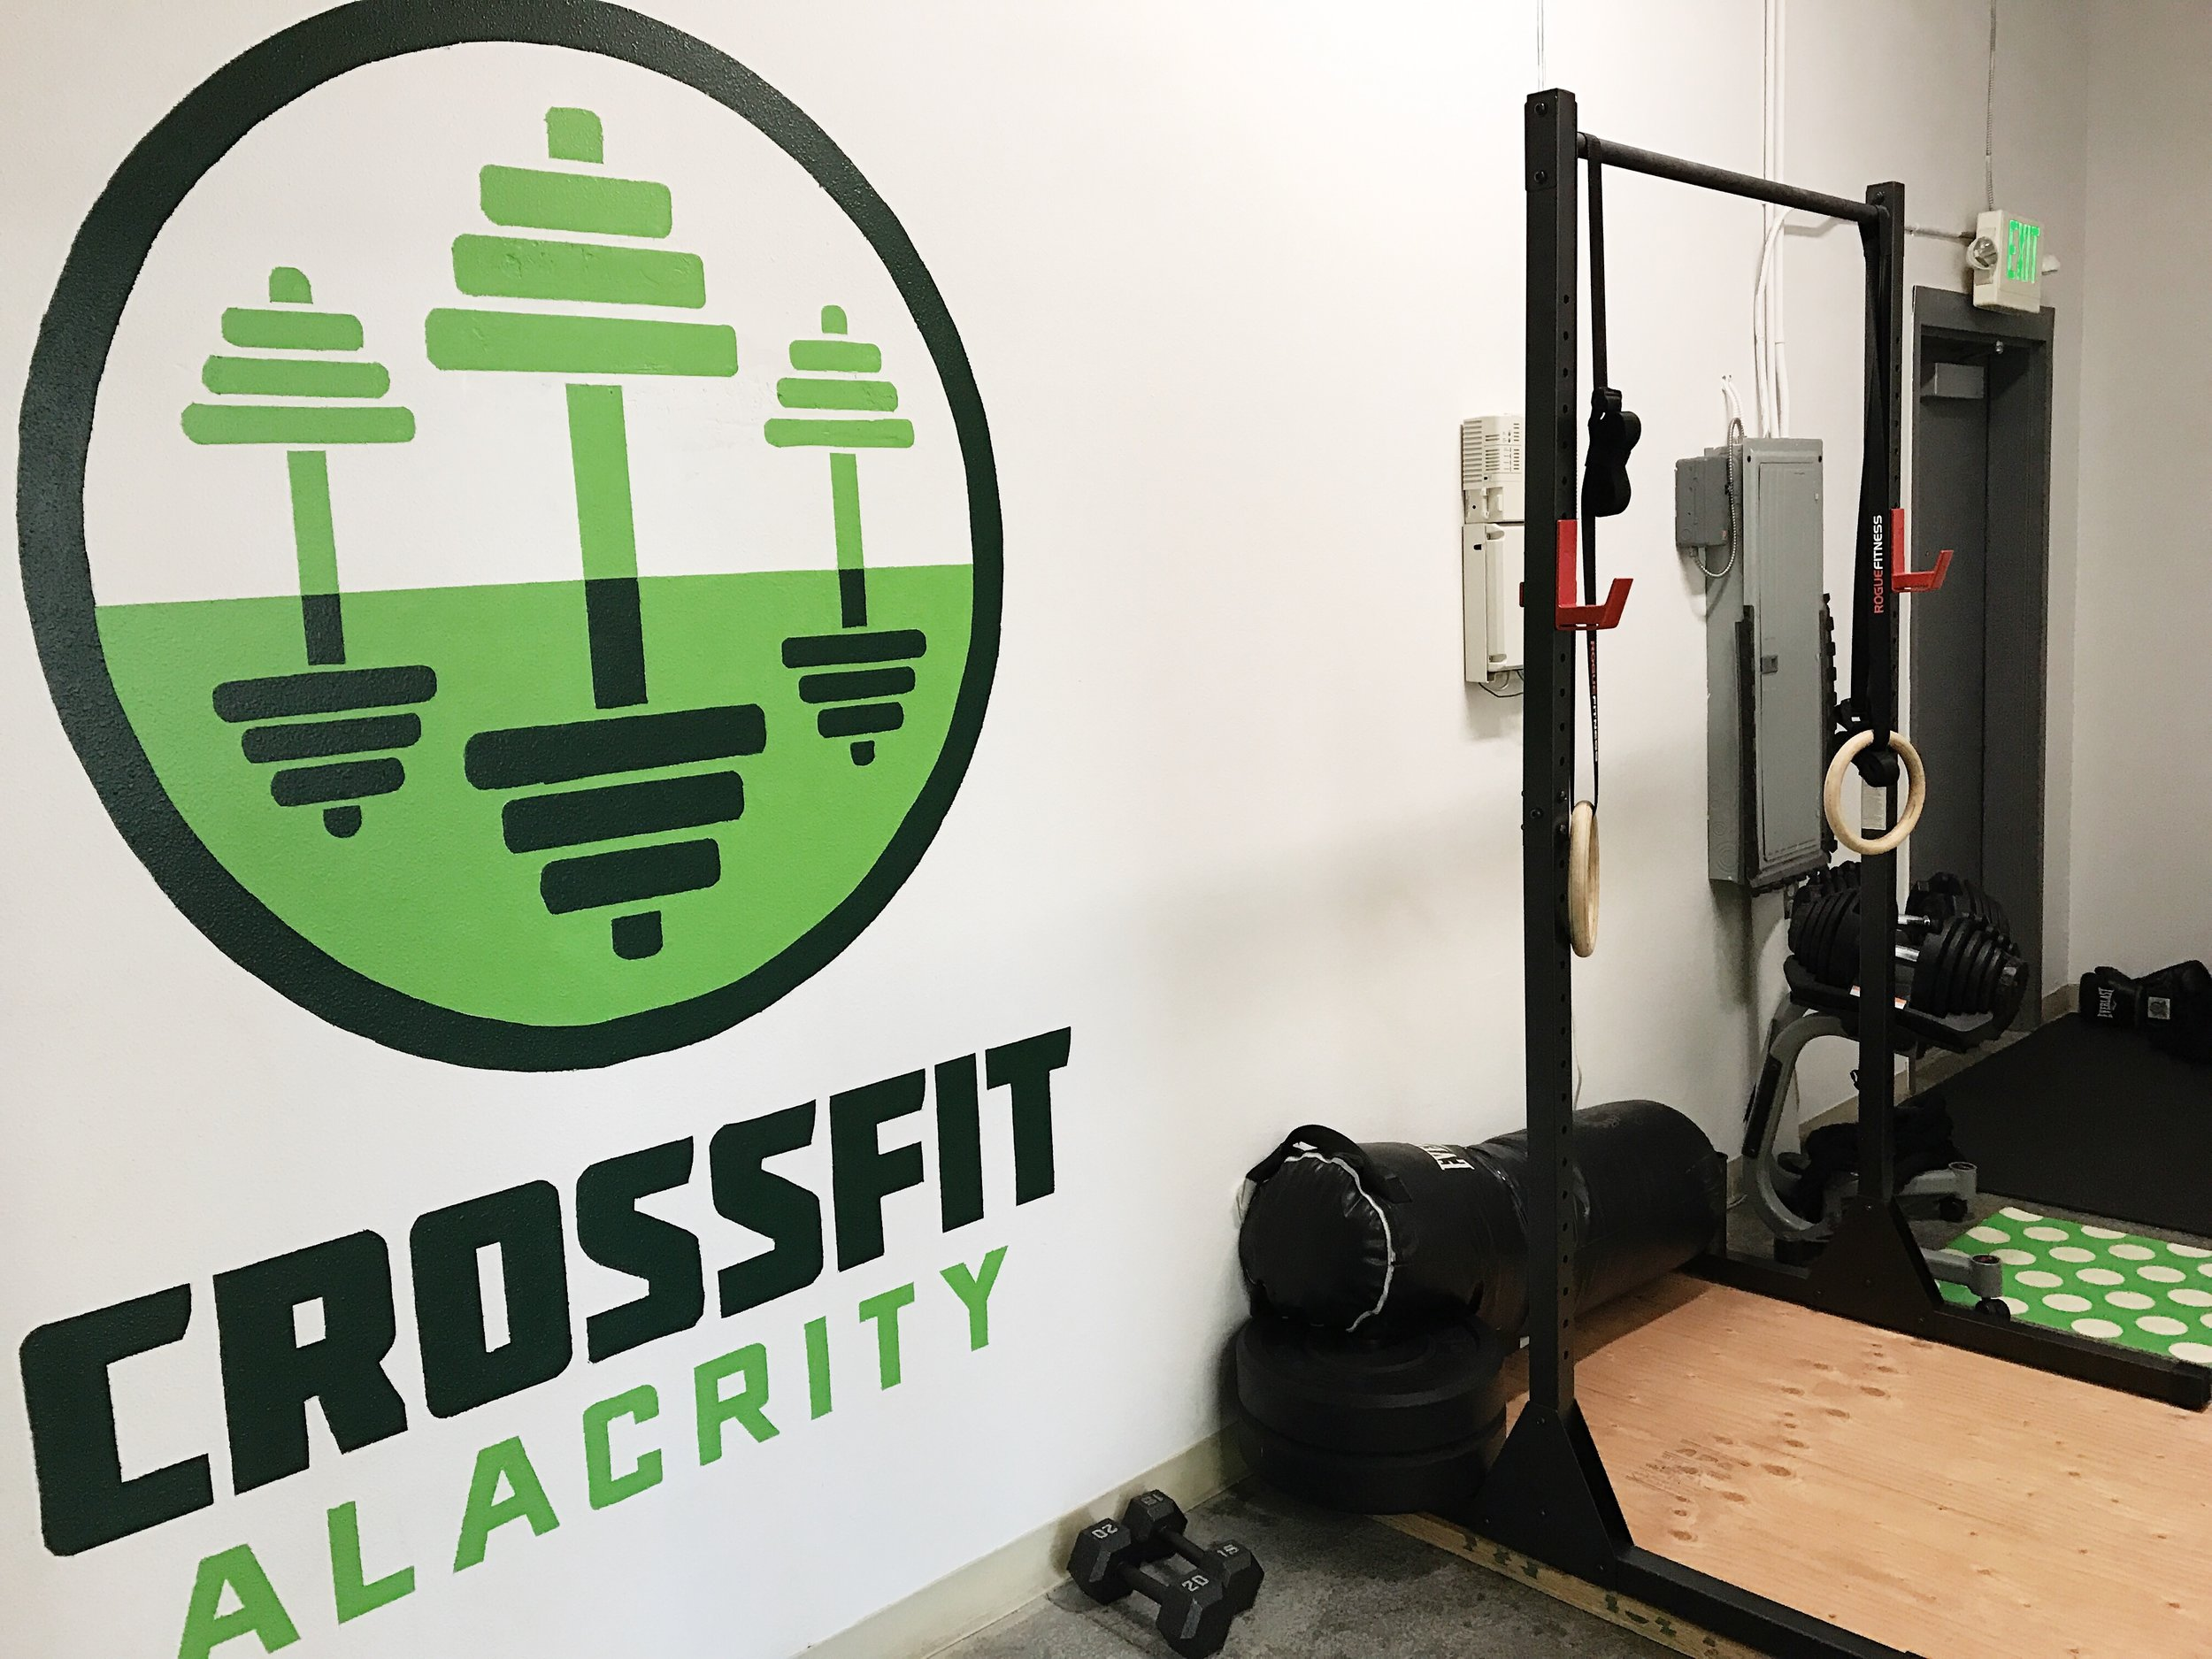 CrossFit Alacrity Personal Training Studio Space